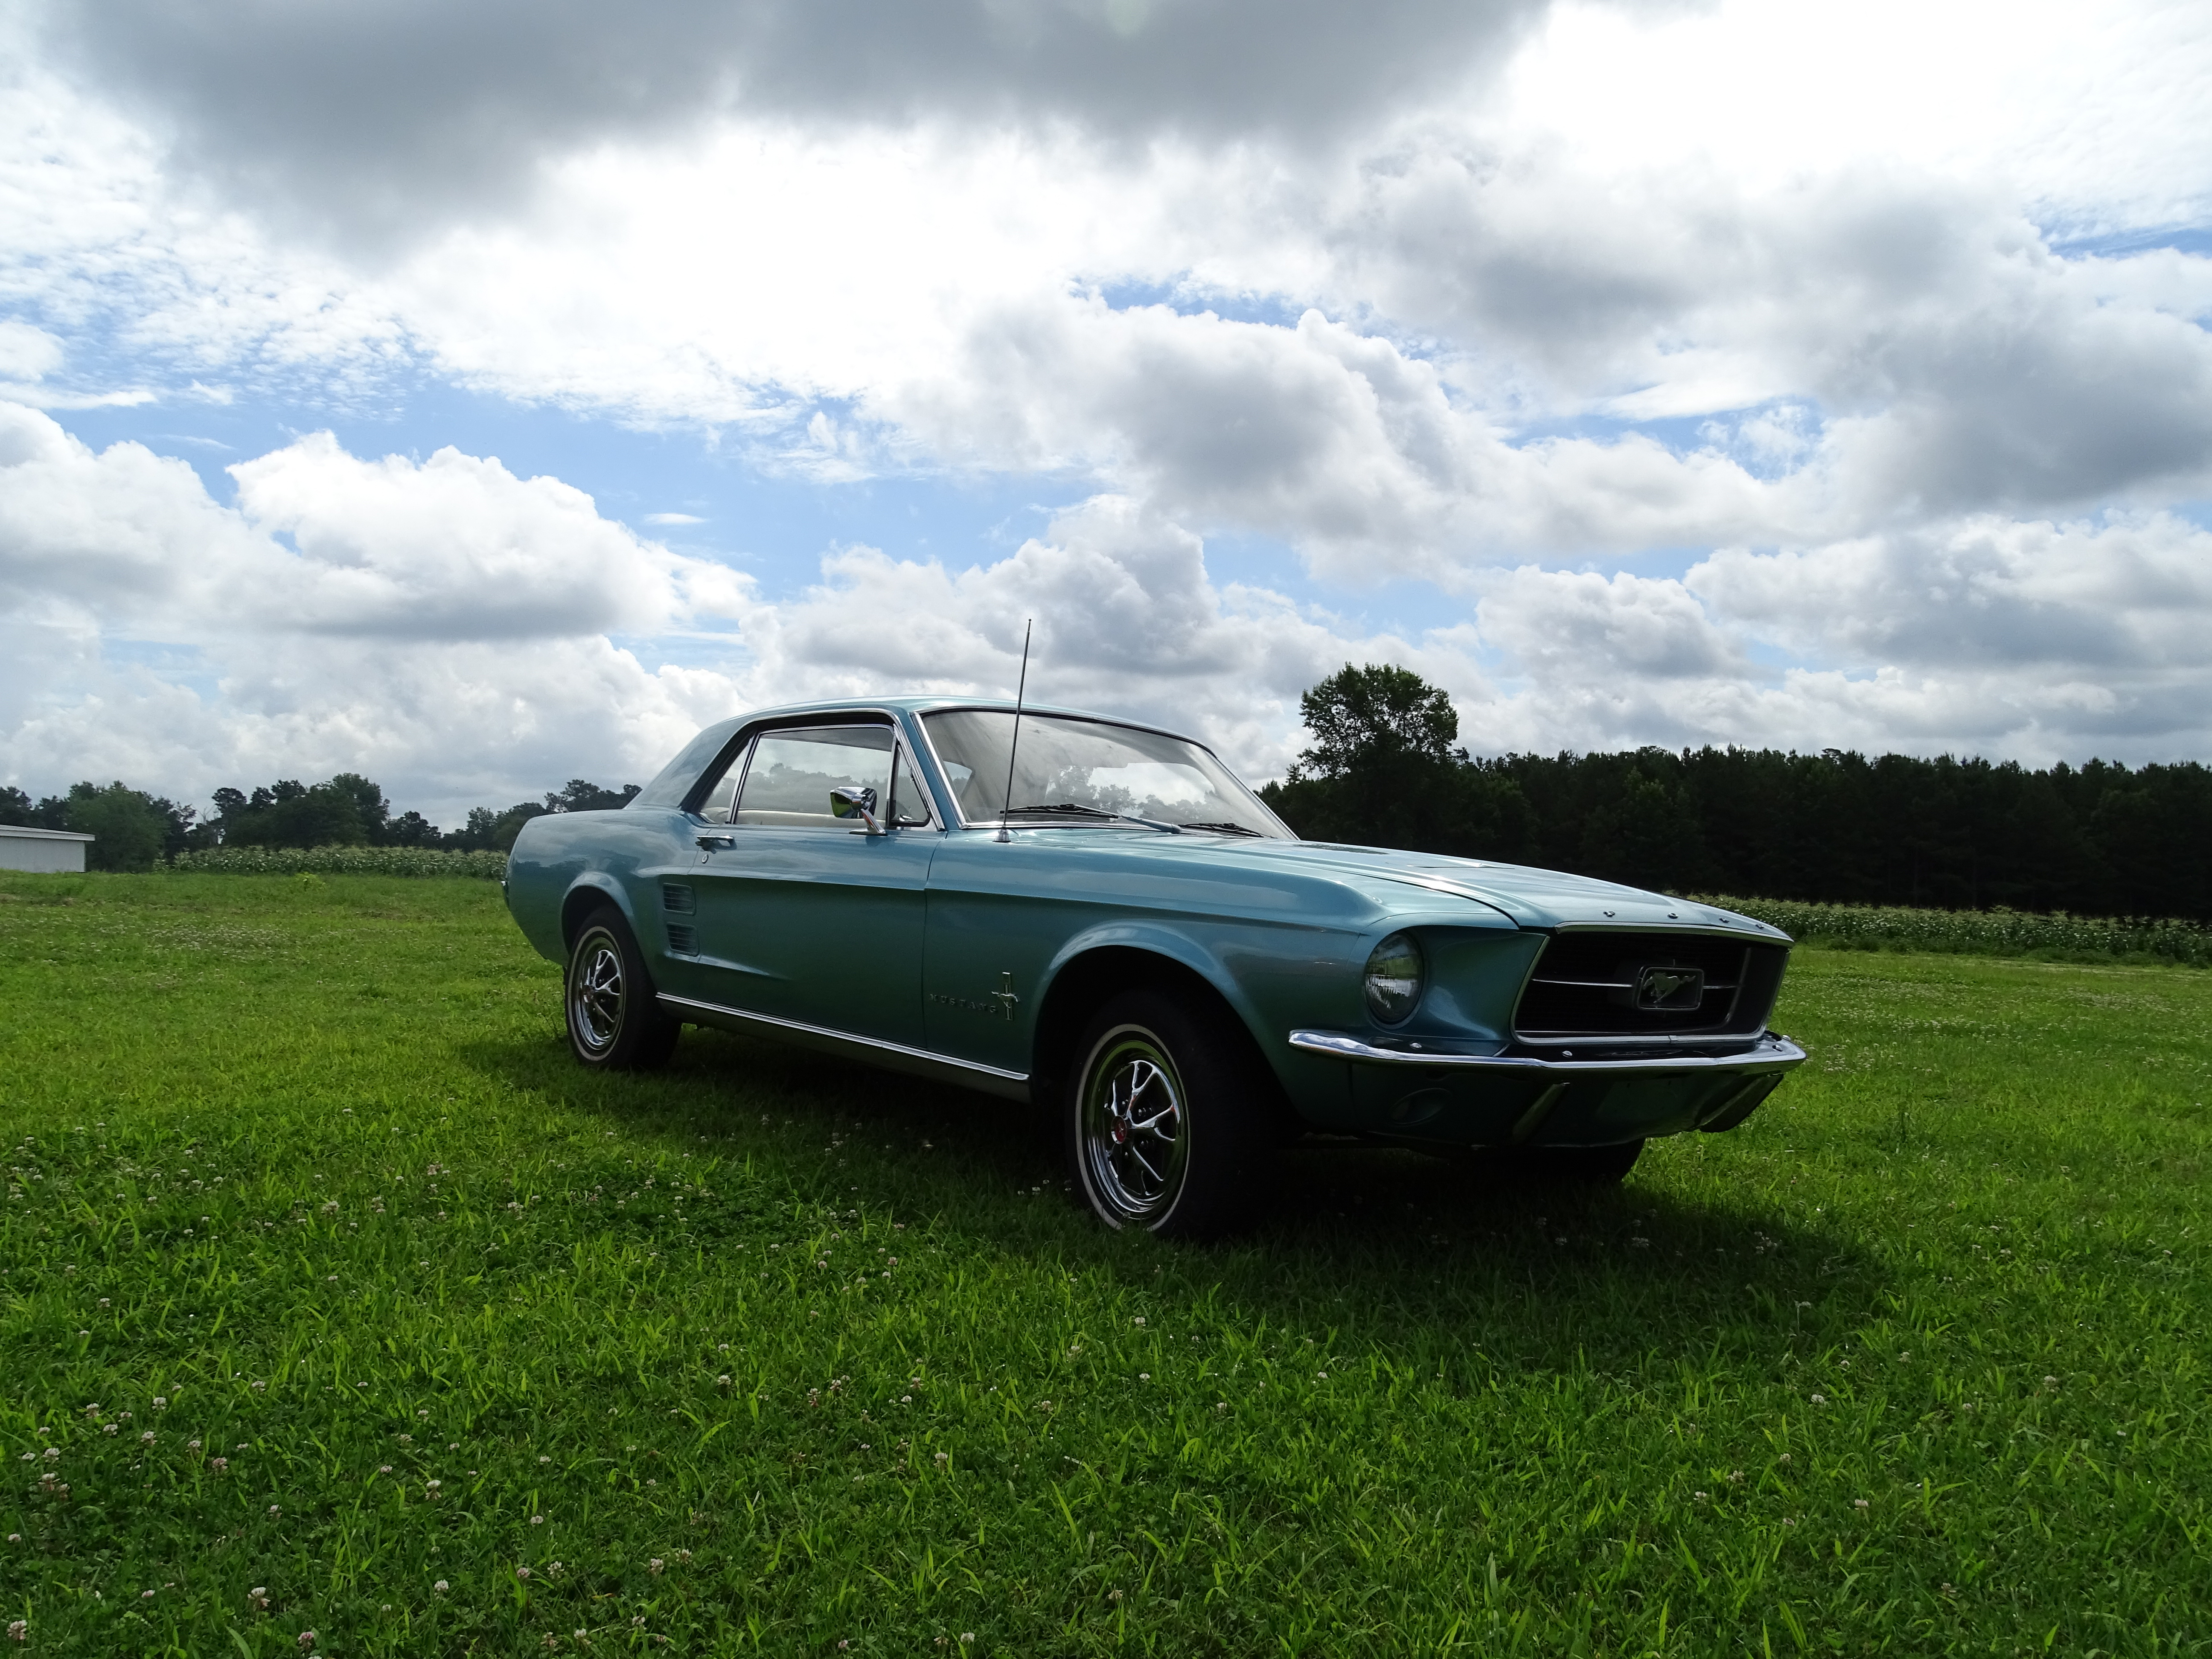 1967 ford mustang gaa classic cars. Black Bedroom Furniture Sets. Home Design Ideas